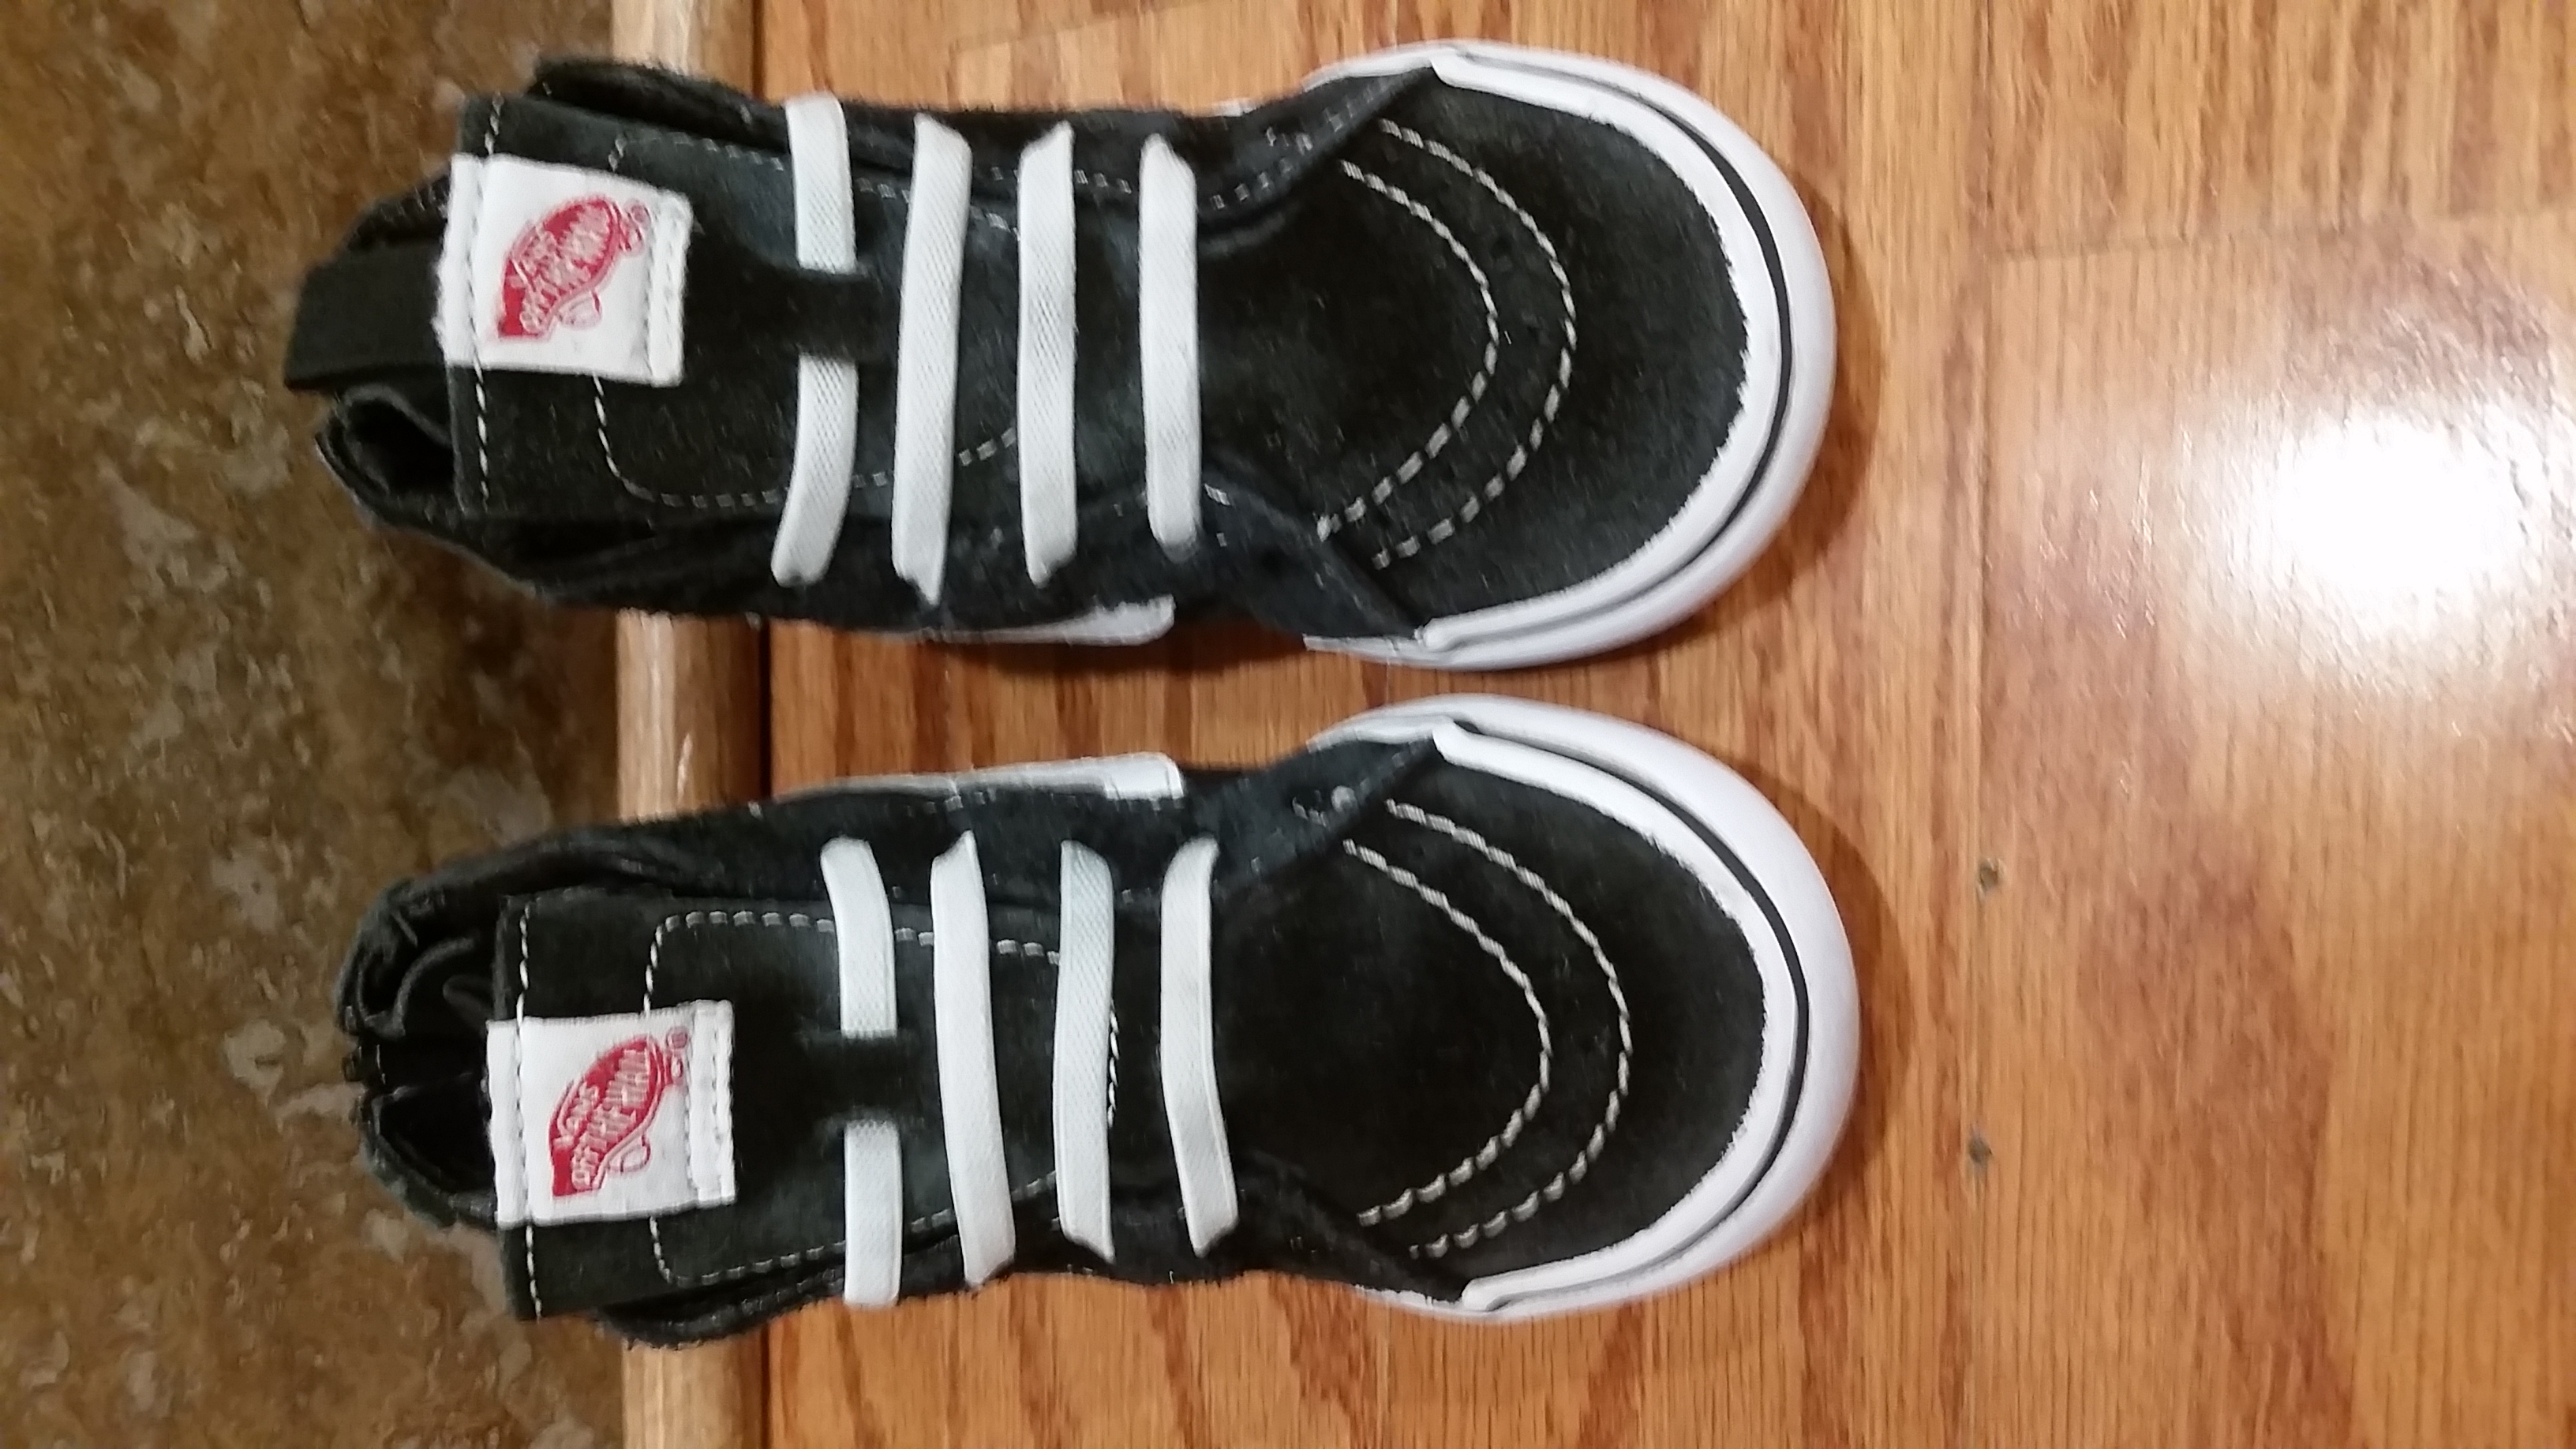 Toddler Boys size 9, VANS Sk8-Hi suede sneakers in EUC, $ PRICE IS $7.00 no more and no less. $7.00 firm.